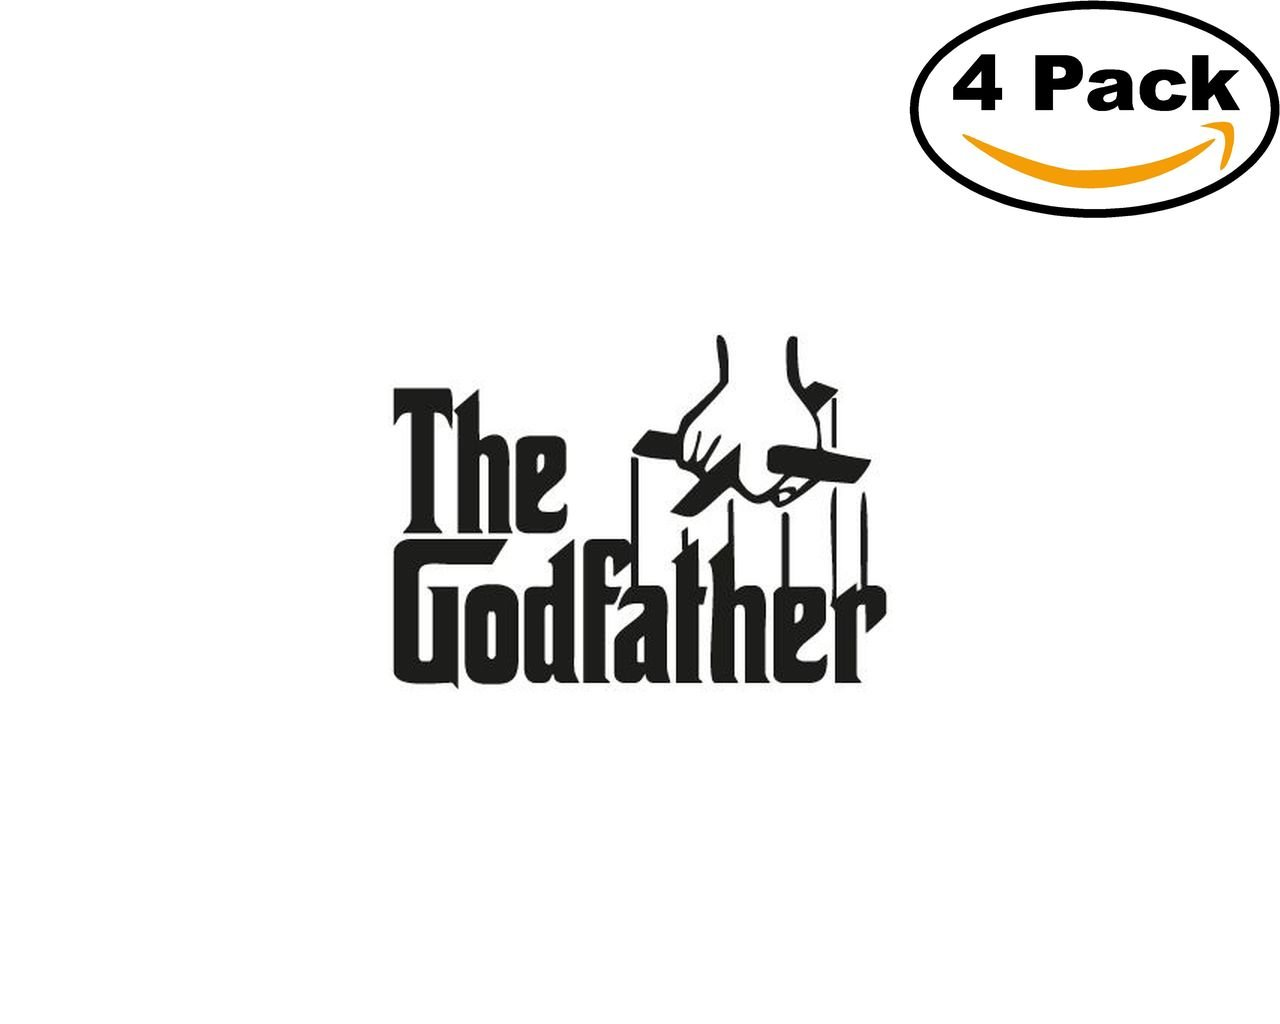 the godfather 4 Stickers 4x4 Inches Car Bumper Window Sticker Decal canvasbylam